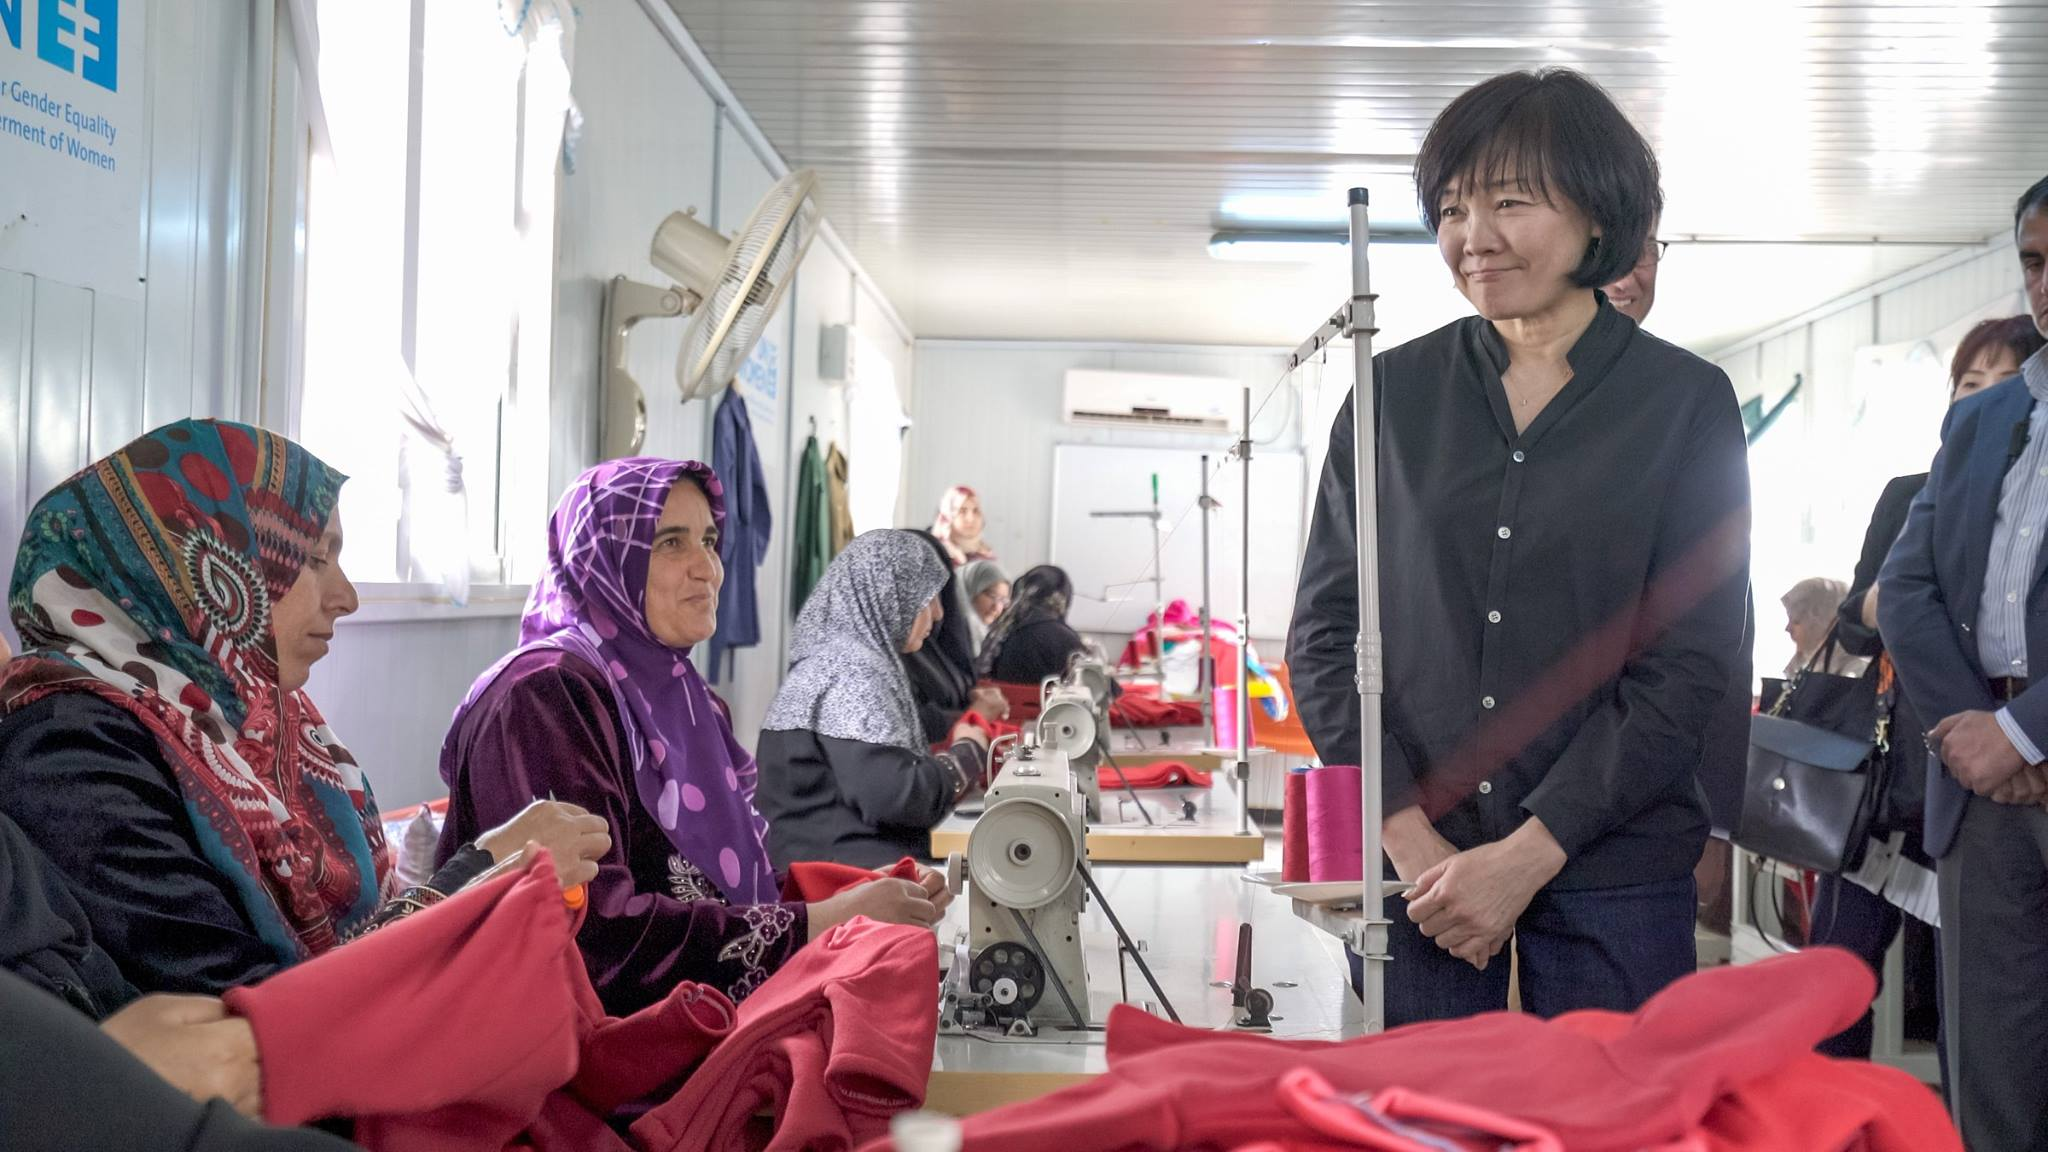 The First Lady, Mrs. Akie Abe visits the tailoring center within the Oasis, meeting the women crafting the baby kits that are distributed throughout the camp hospitals each month. Photo source UN Women/Christopher Herwig